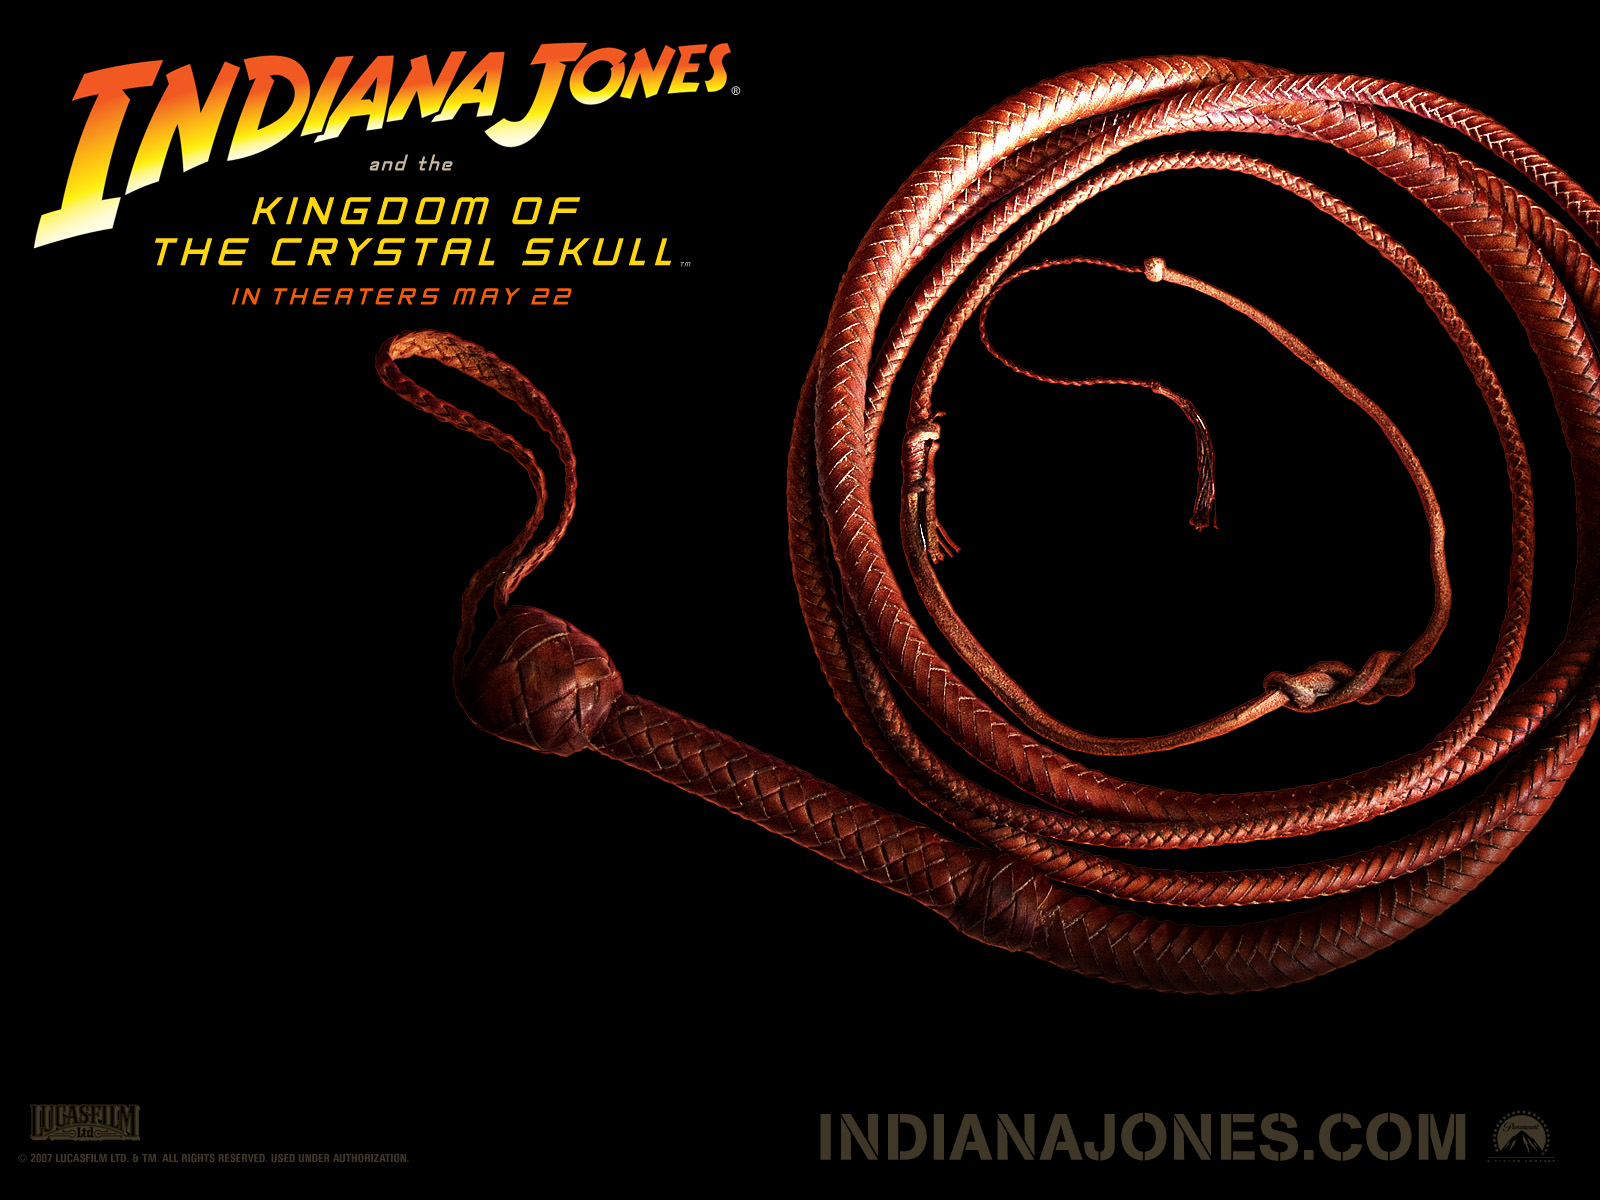 Wallpaper Indiana Jones Indiana Jones and the Kingdom of the Crystal Skull film Movies